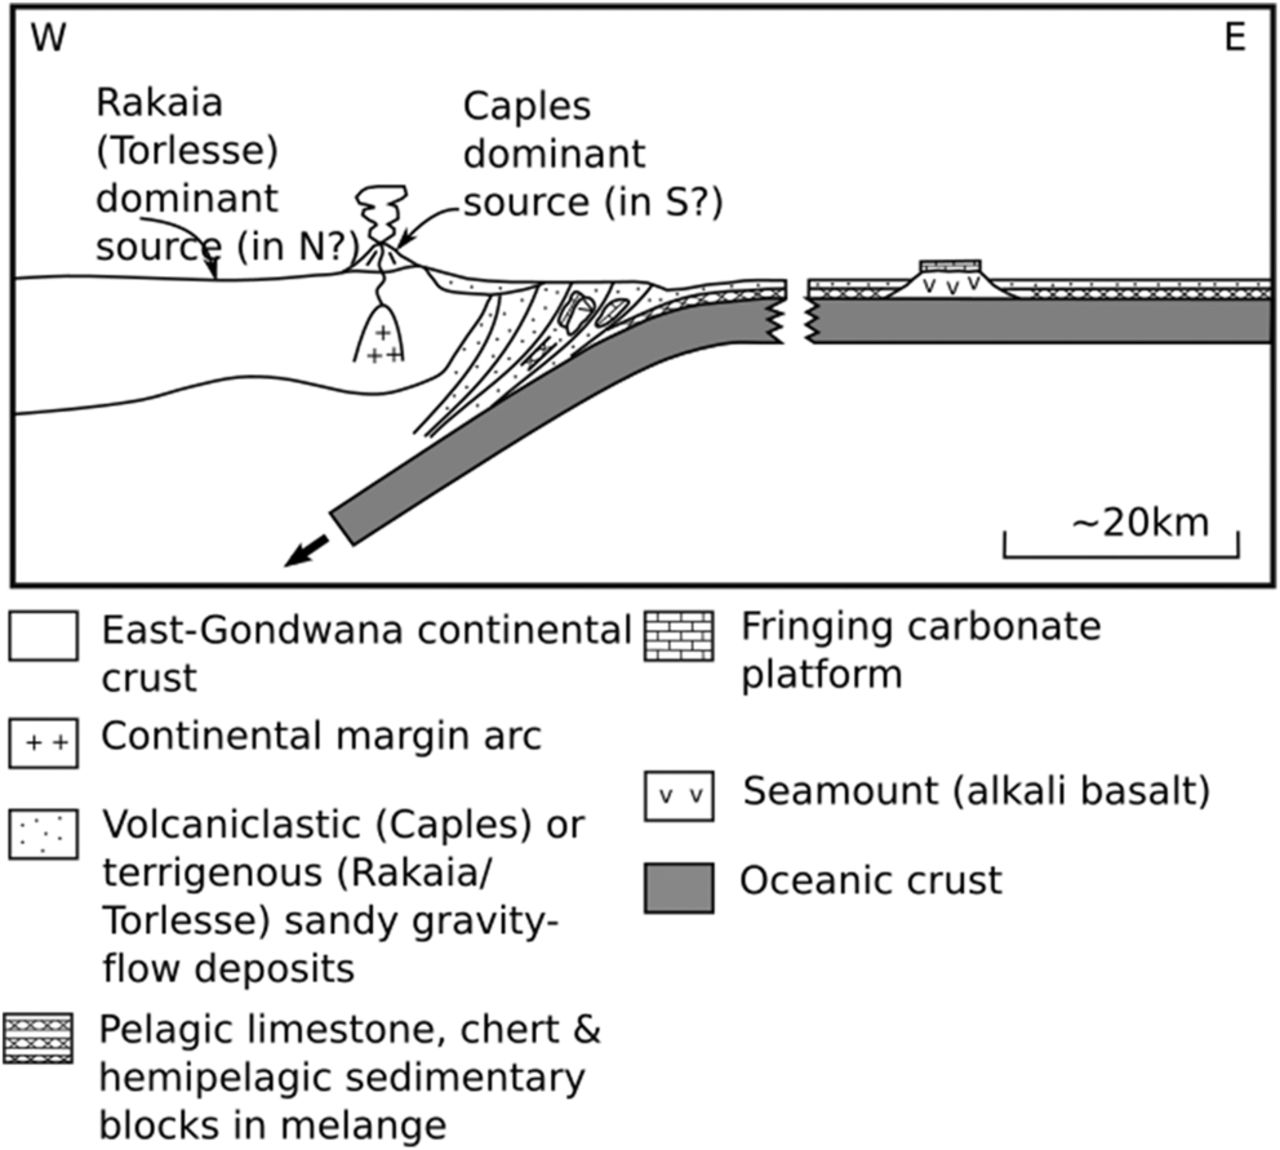 Chapter 15 Construction of a Paleozoic–Mesozoic accretionary orogen